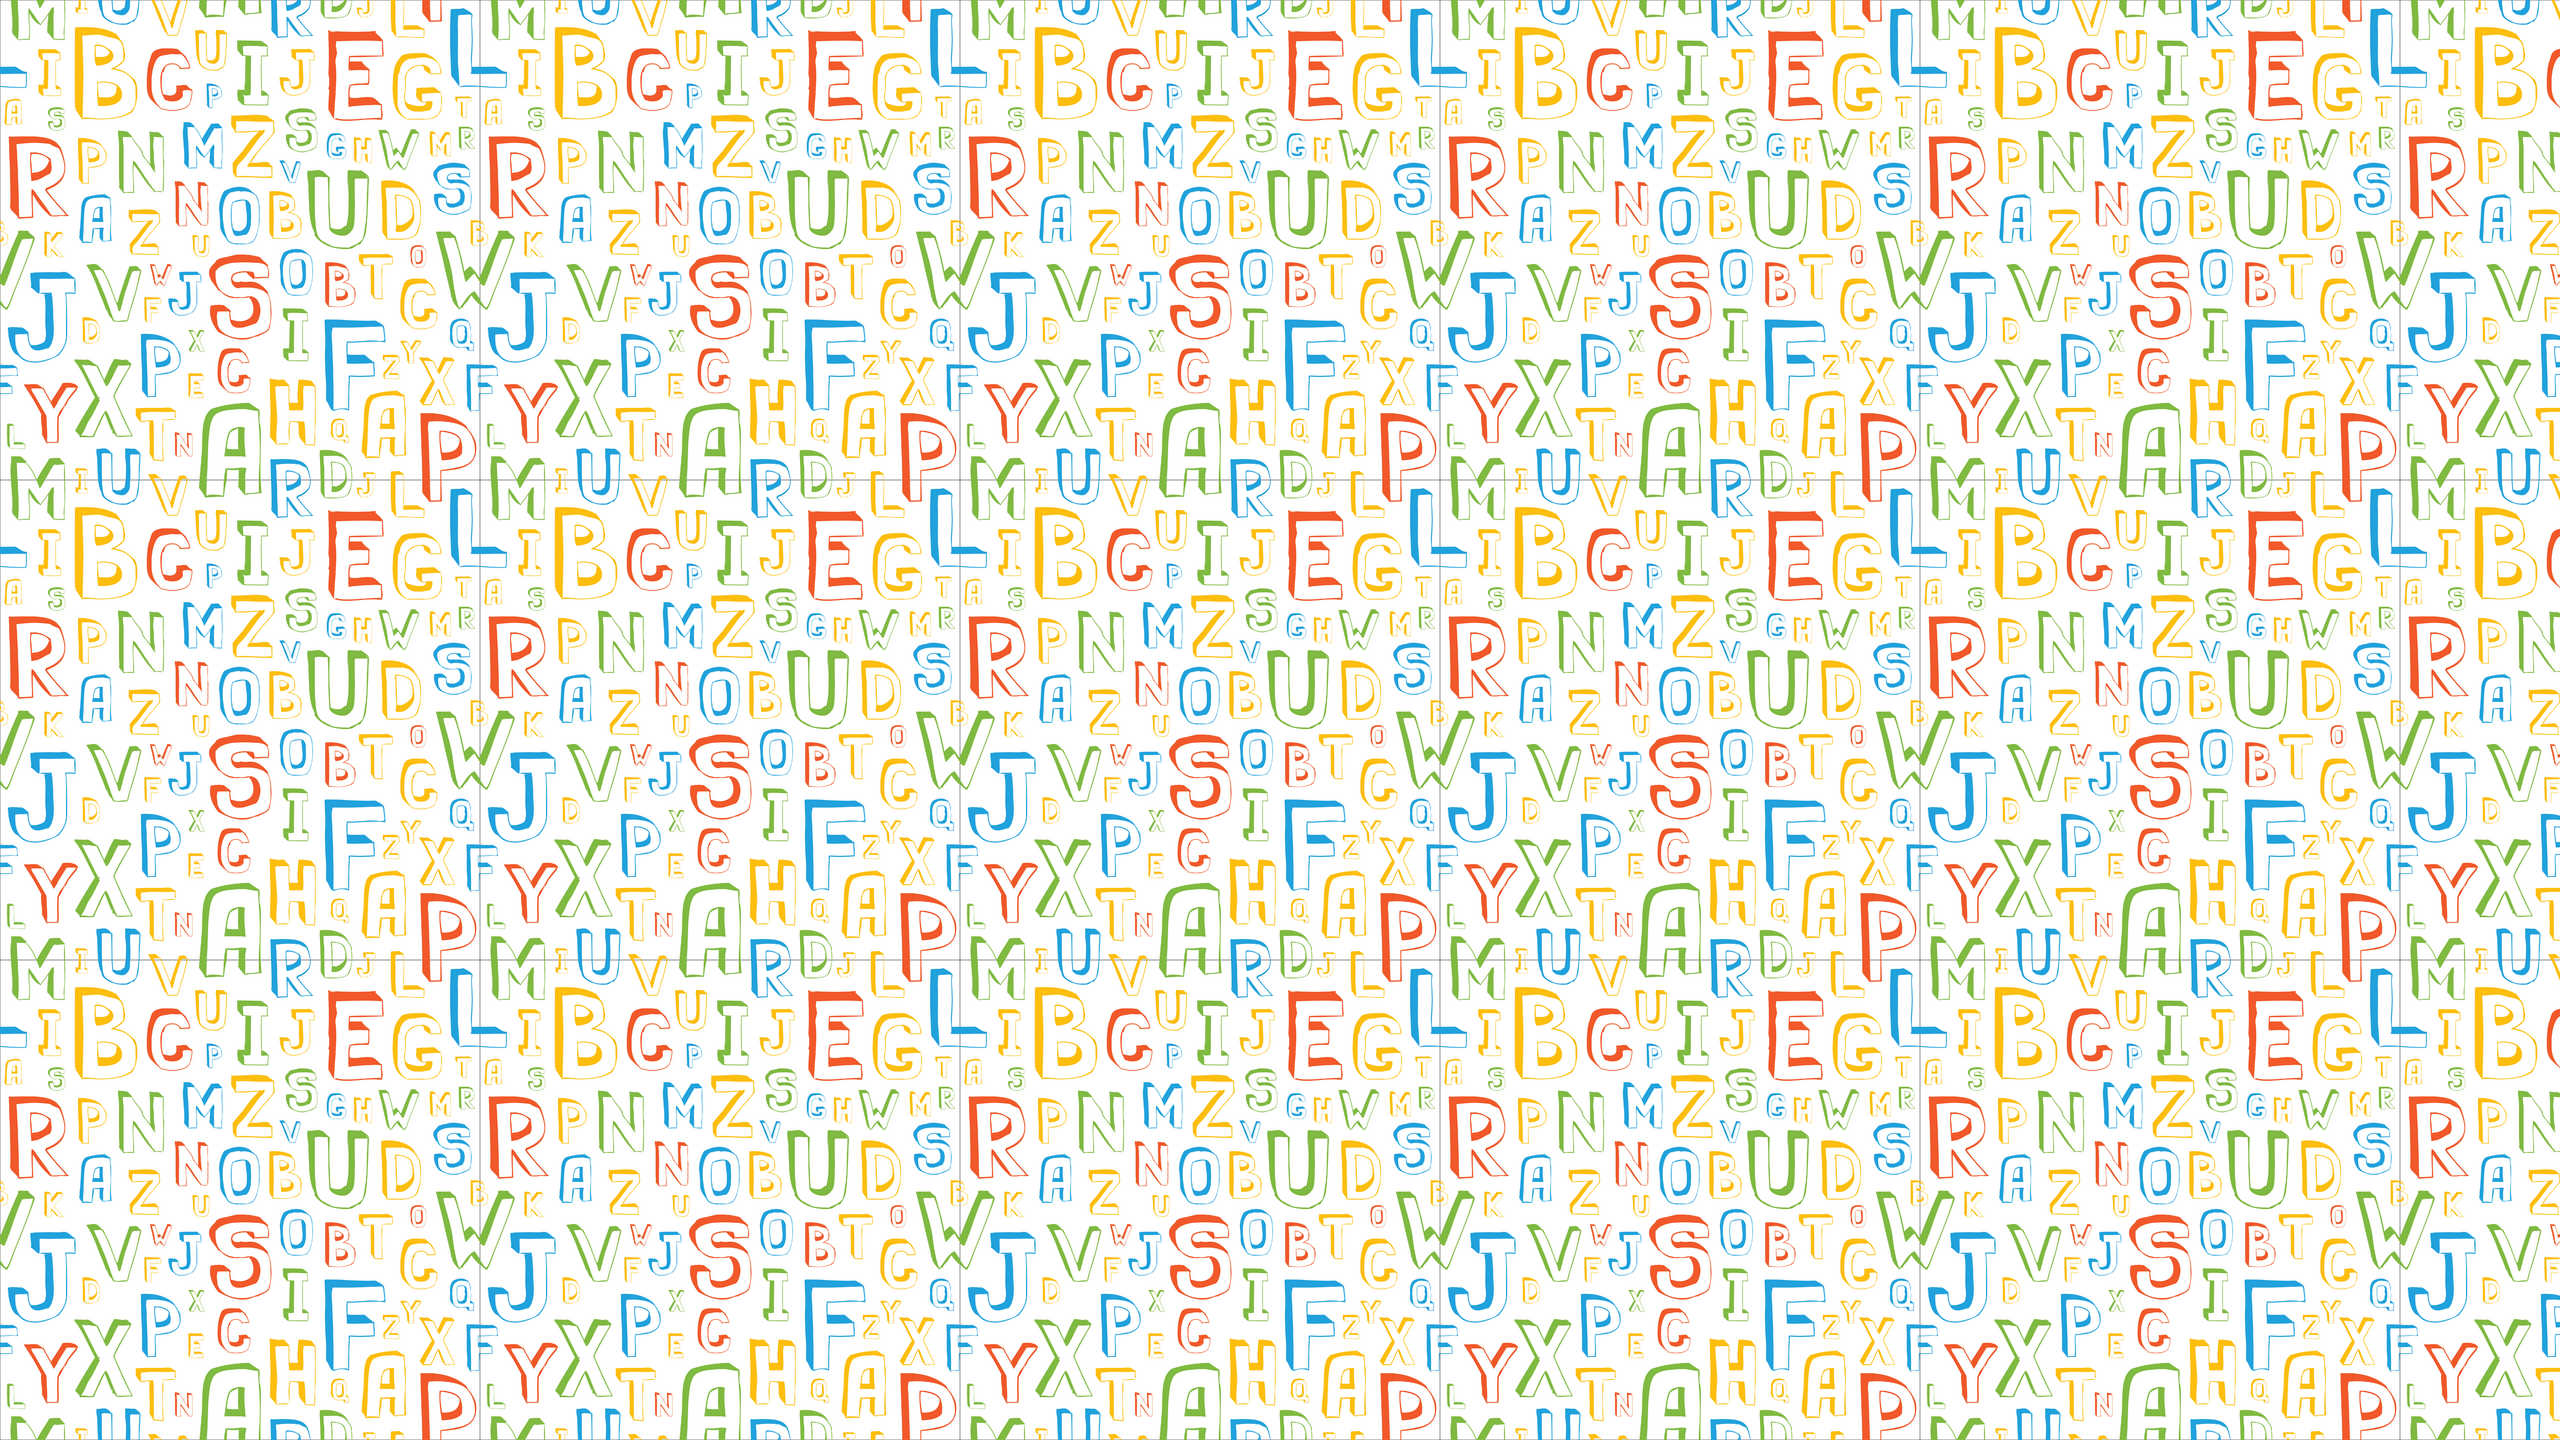 V.81 Alphabet, High Definition Images